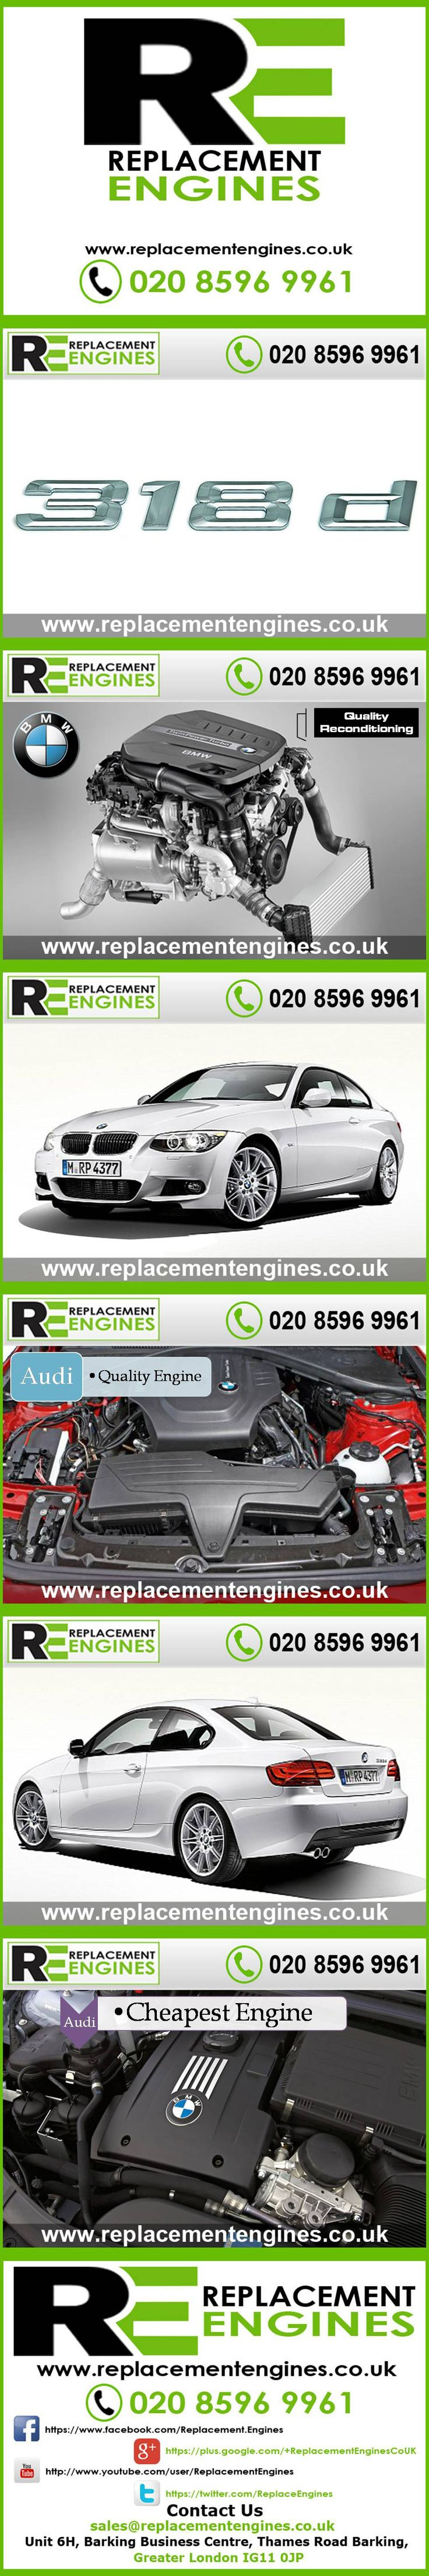 BMW 318d engines for sale at the cheapest prices, we have low mileage used & reconditioned engines in stock now, ready to be delivered to anywhere in the UK or overseas, visit Replacement Engines website here.